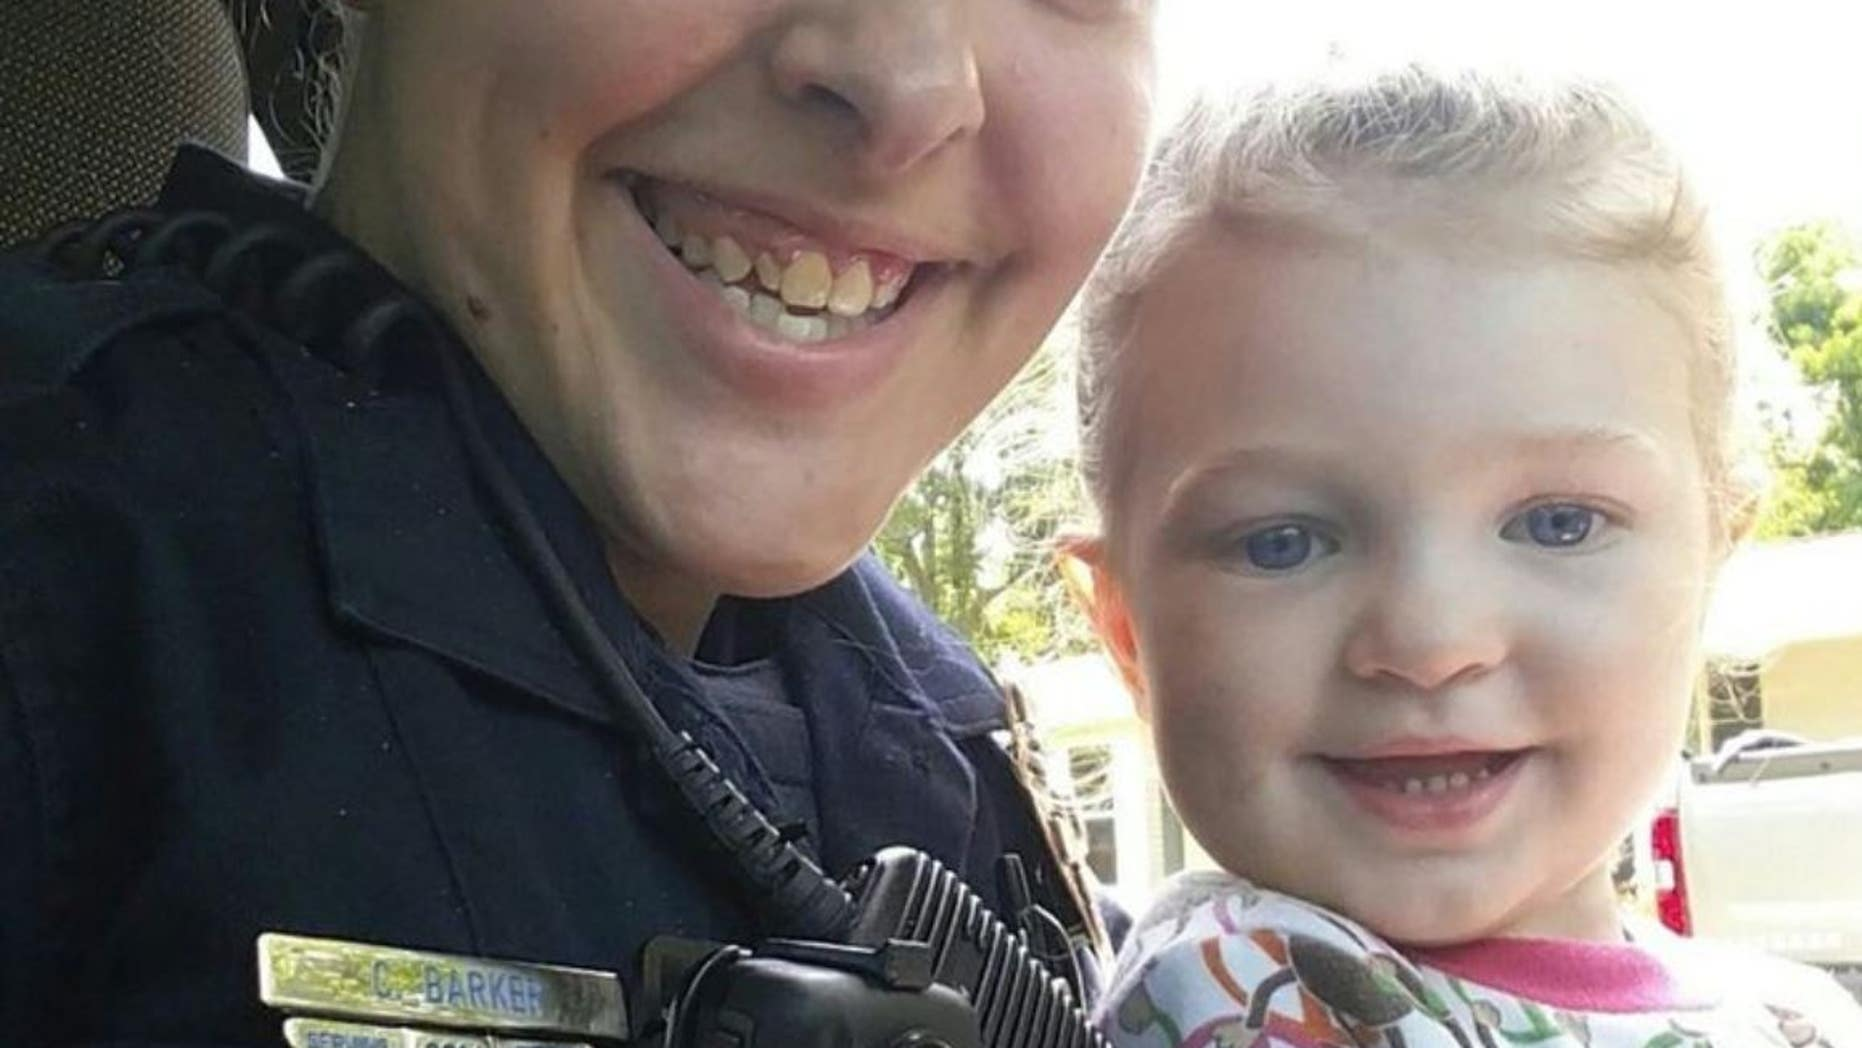 Cassie Barker, an ex-police officer, admitted to having sex with her supervisor in September 2016, while her 3-year-old daughter was left dying in hot patrol car.